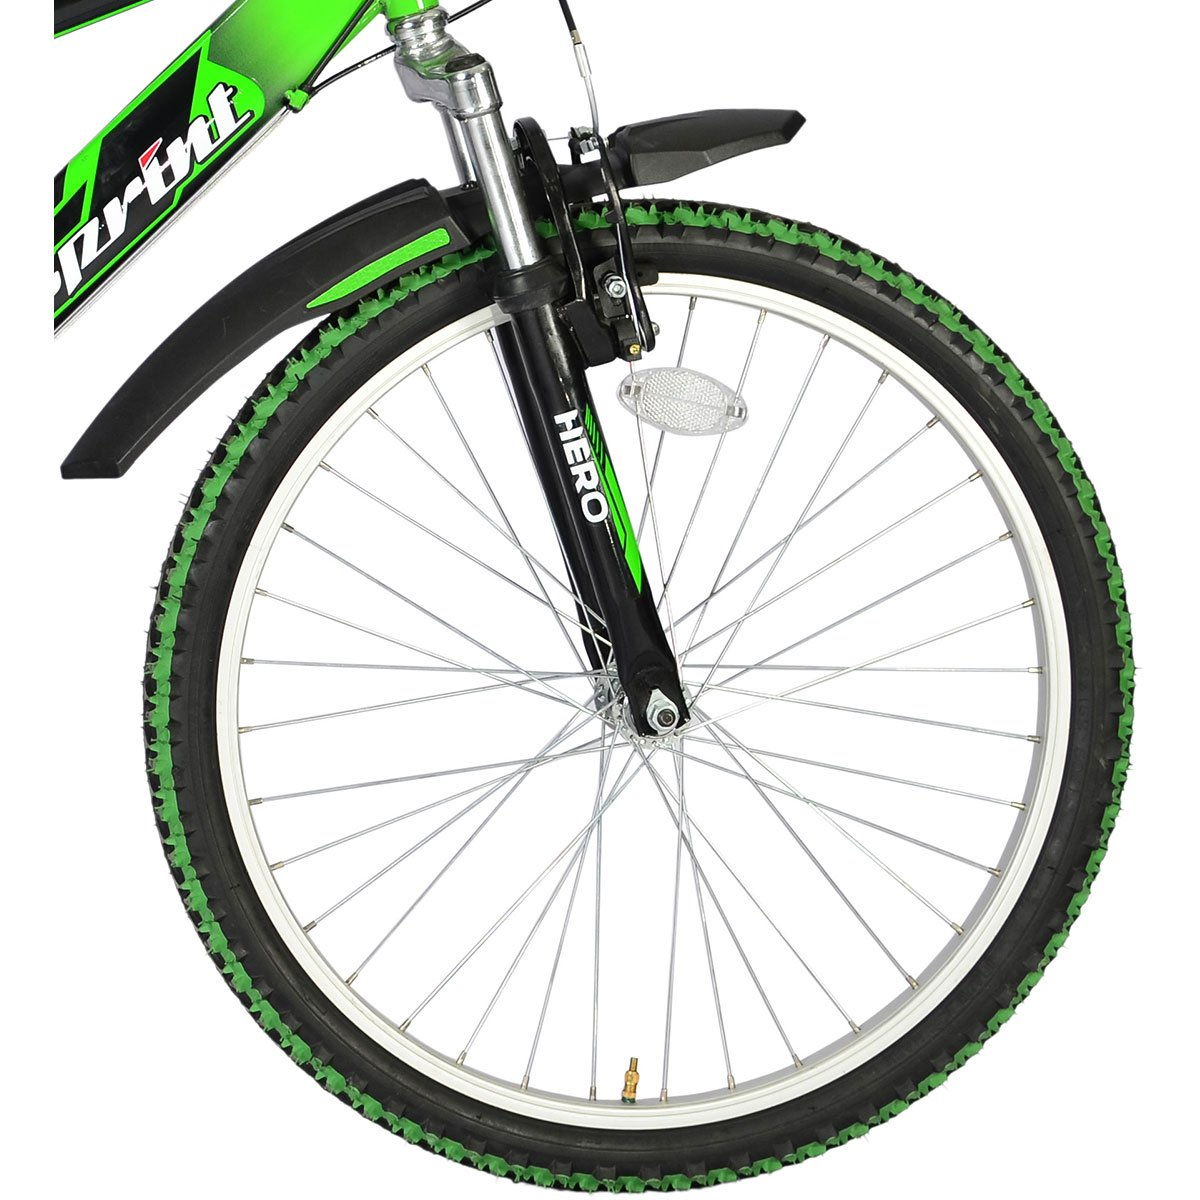 Buy Hero Sprint Next 24t 18 Speed Mountain Cycle Green Black M Y Bracelet Mtb 397 Online At Low Prices In India